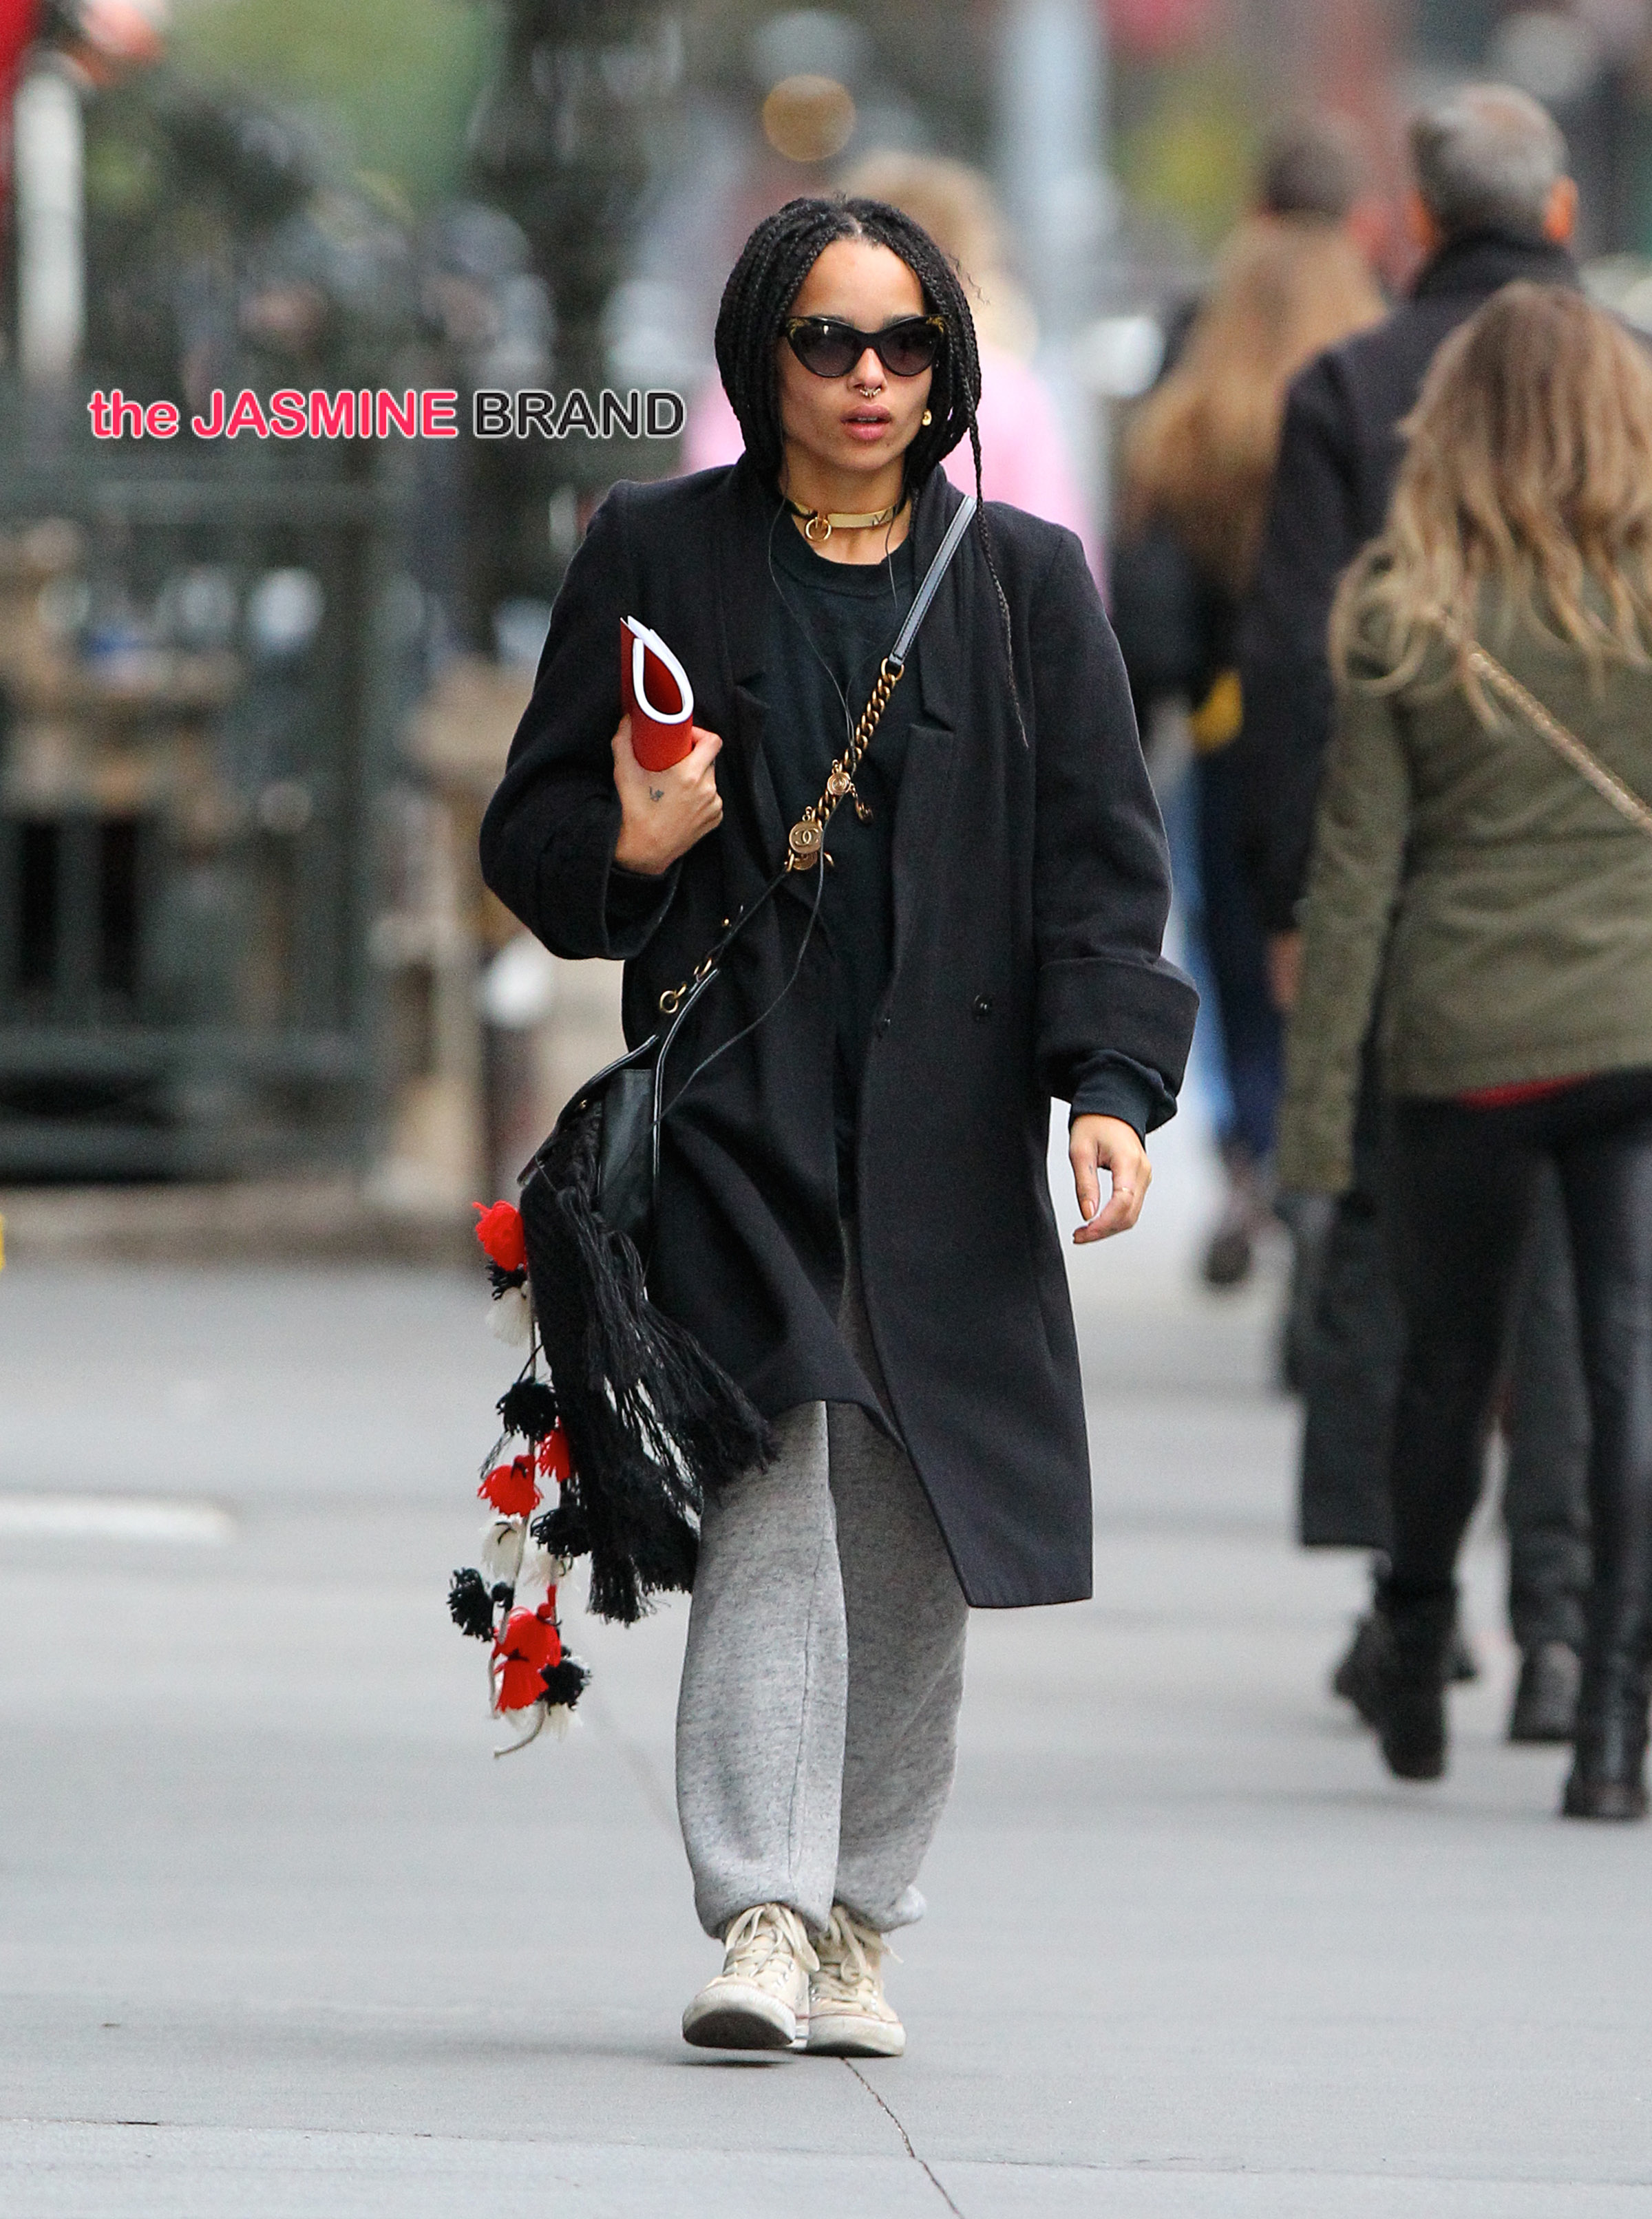 Zoe Kravitz looks almost identical to her mother Lisa Bonet